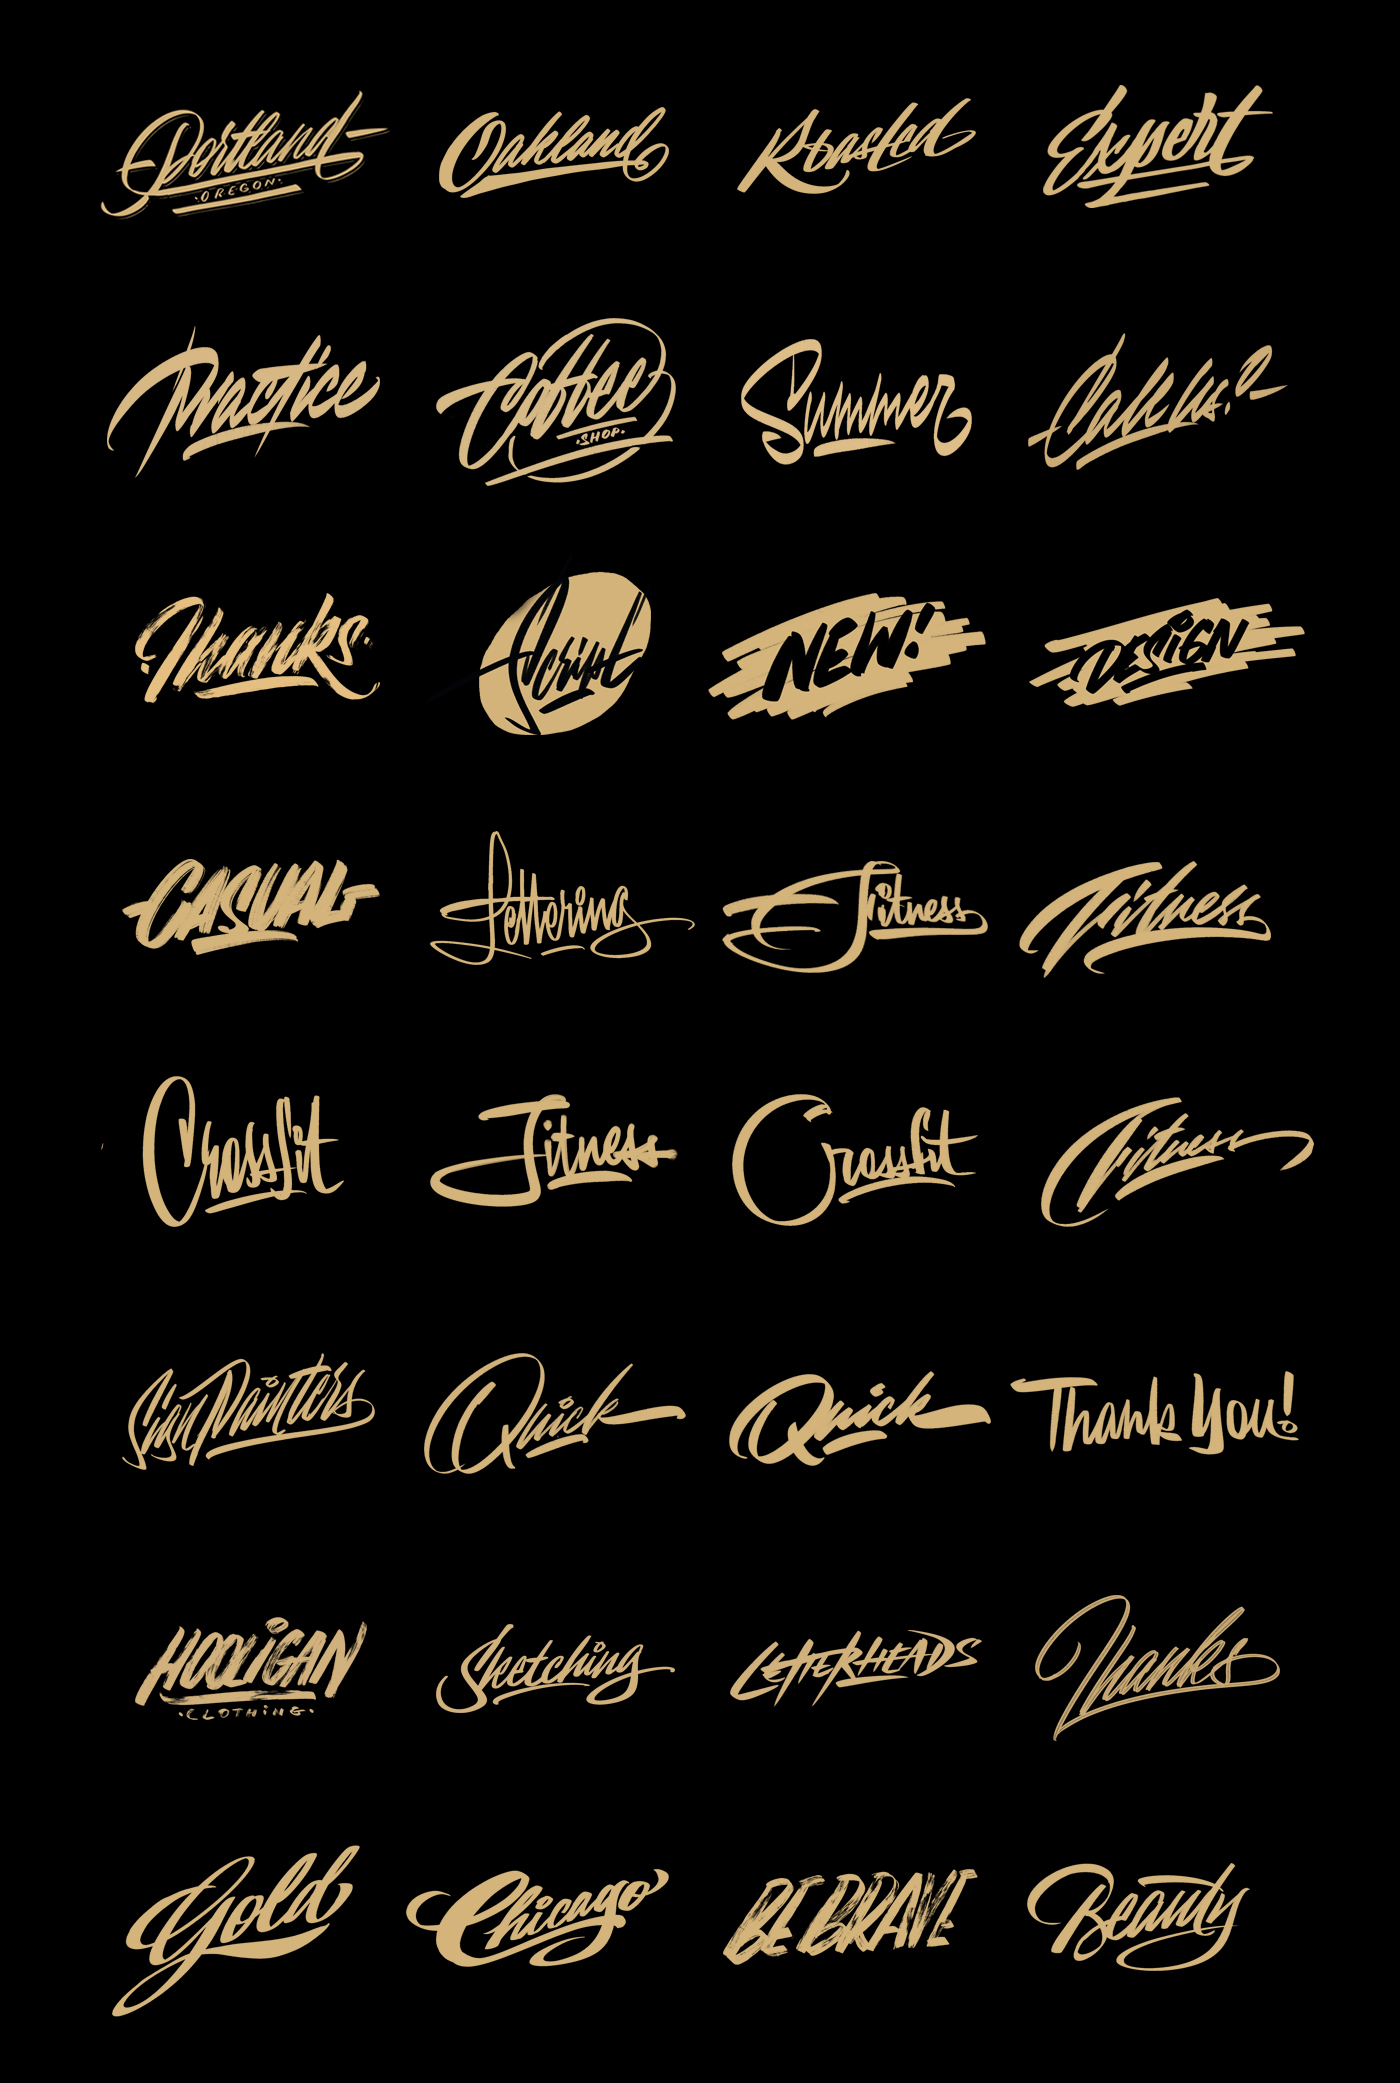 Procreate brushes for sign painting design.